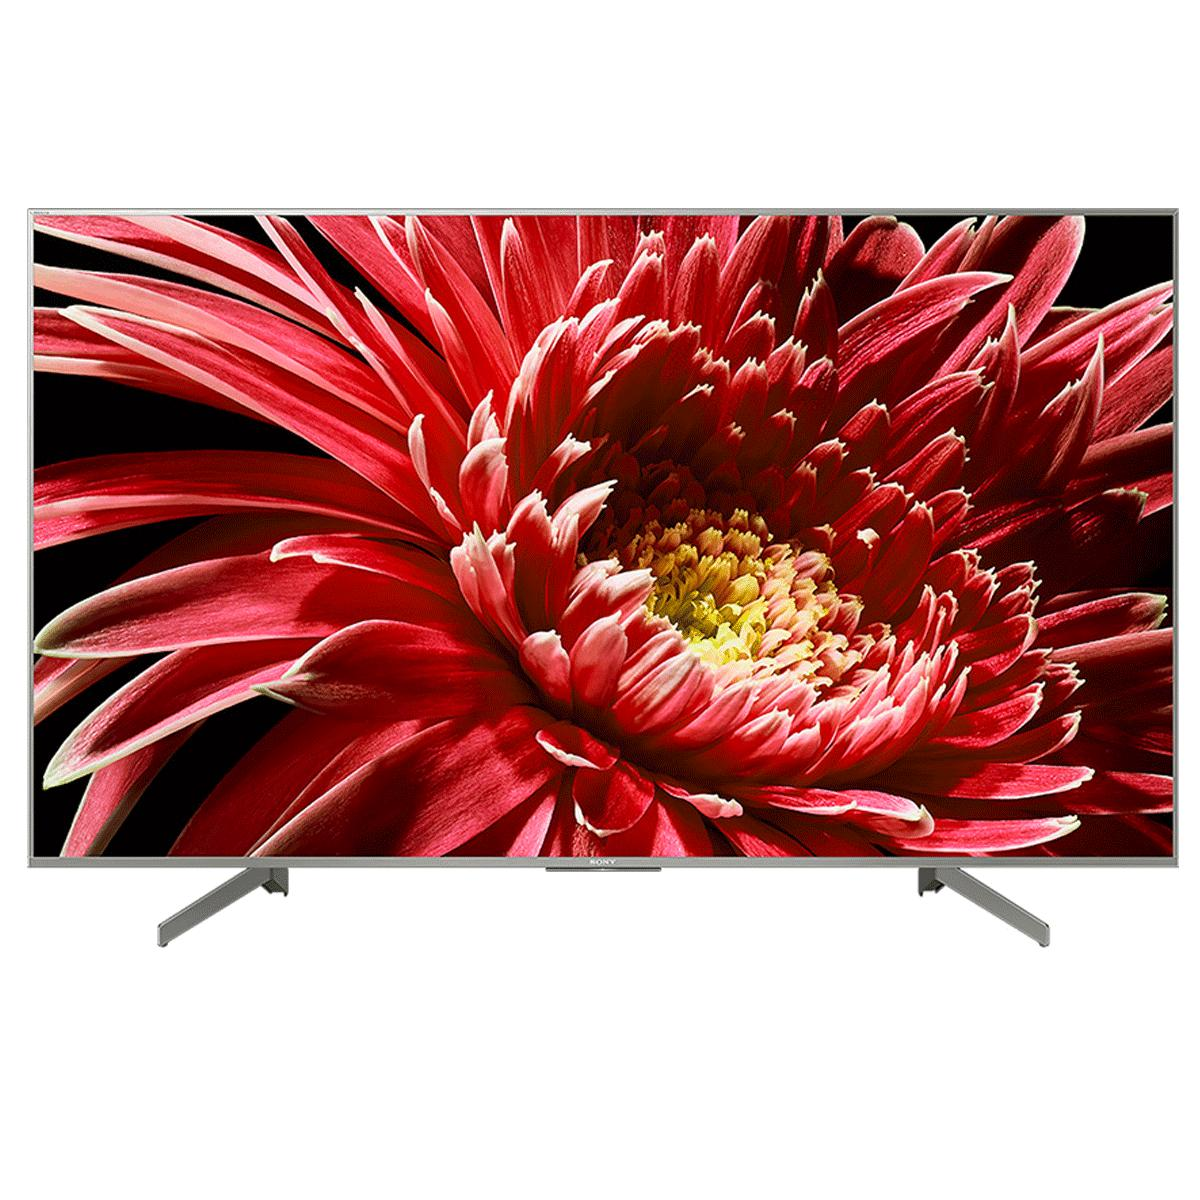 Bảng giá Android Tivi SONY 65 Inch KD-65X8500G/S LED 4K